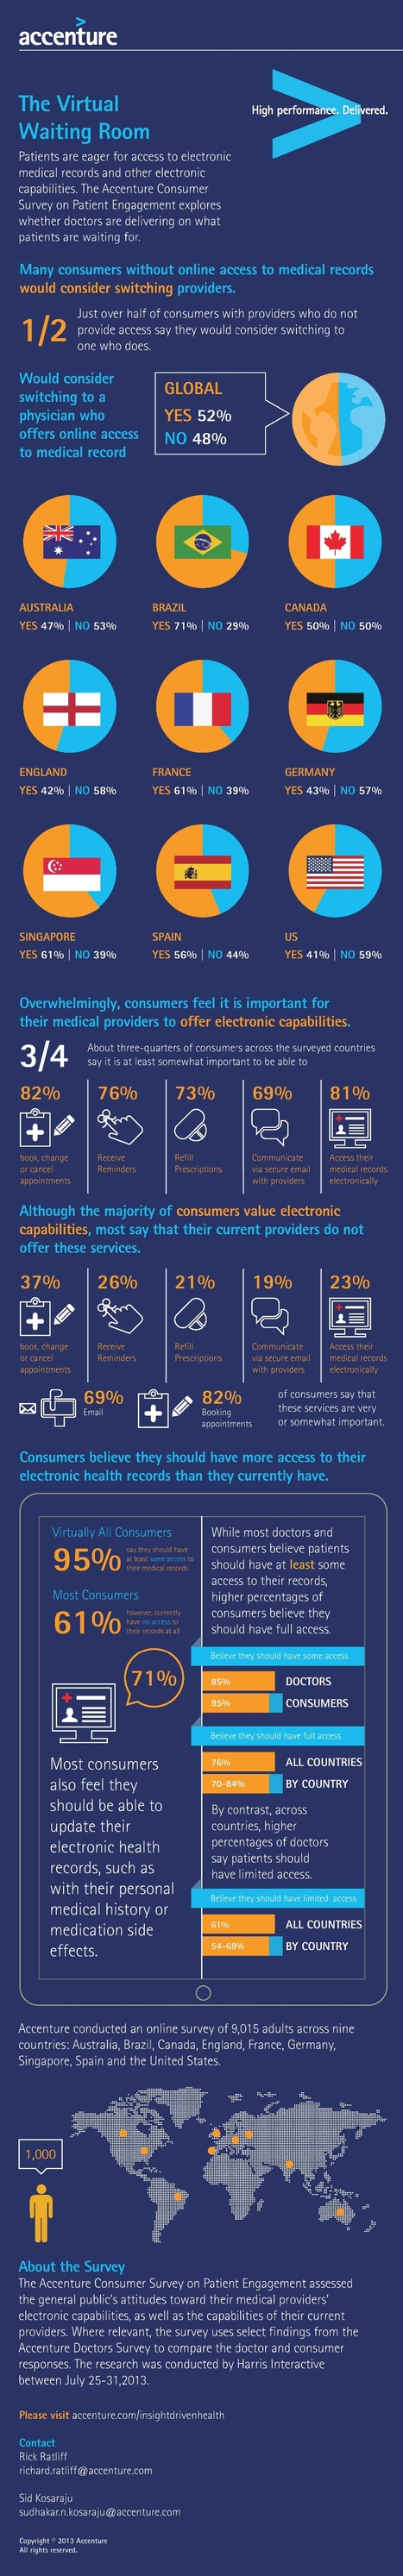 Infographic: Patients Want Access To Their Electronic Medical Records | Mobile Health: How Mobile Phones Support Health Care | Scoop.it